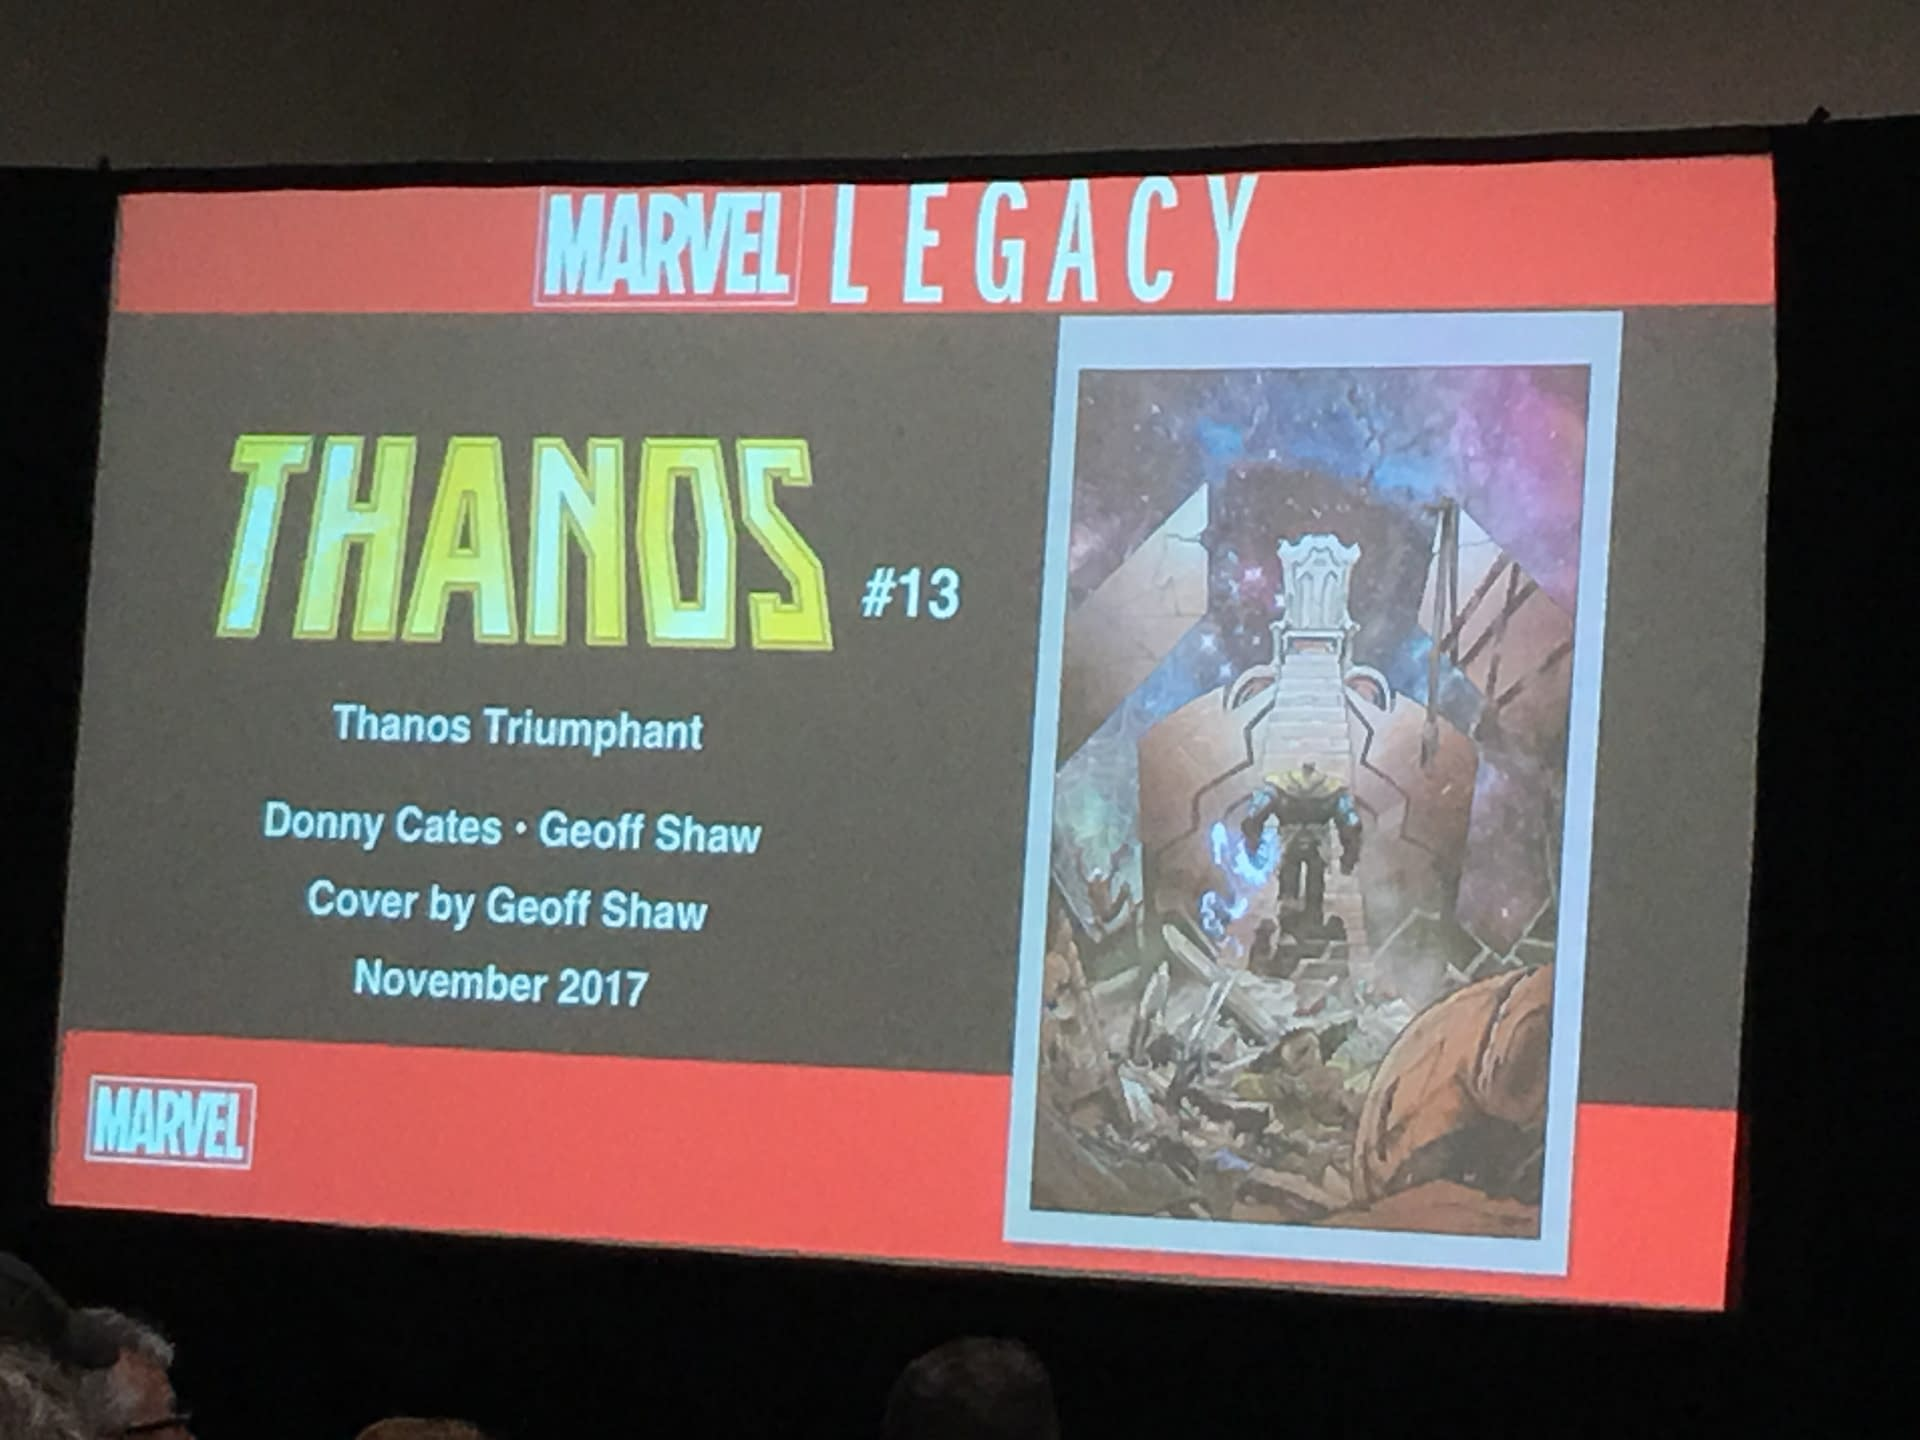 Donny Cates And Geoff Shaw Join 'Thanos' For Marvel Legacy